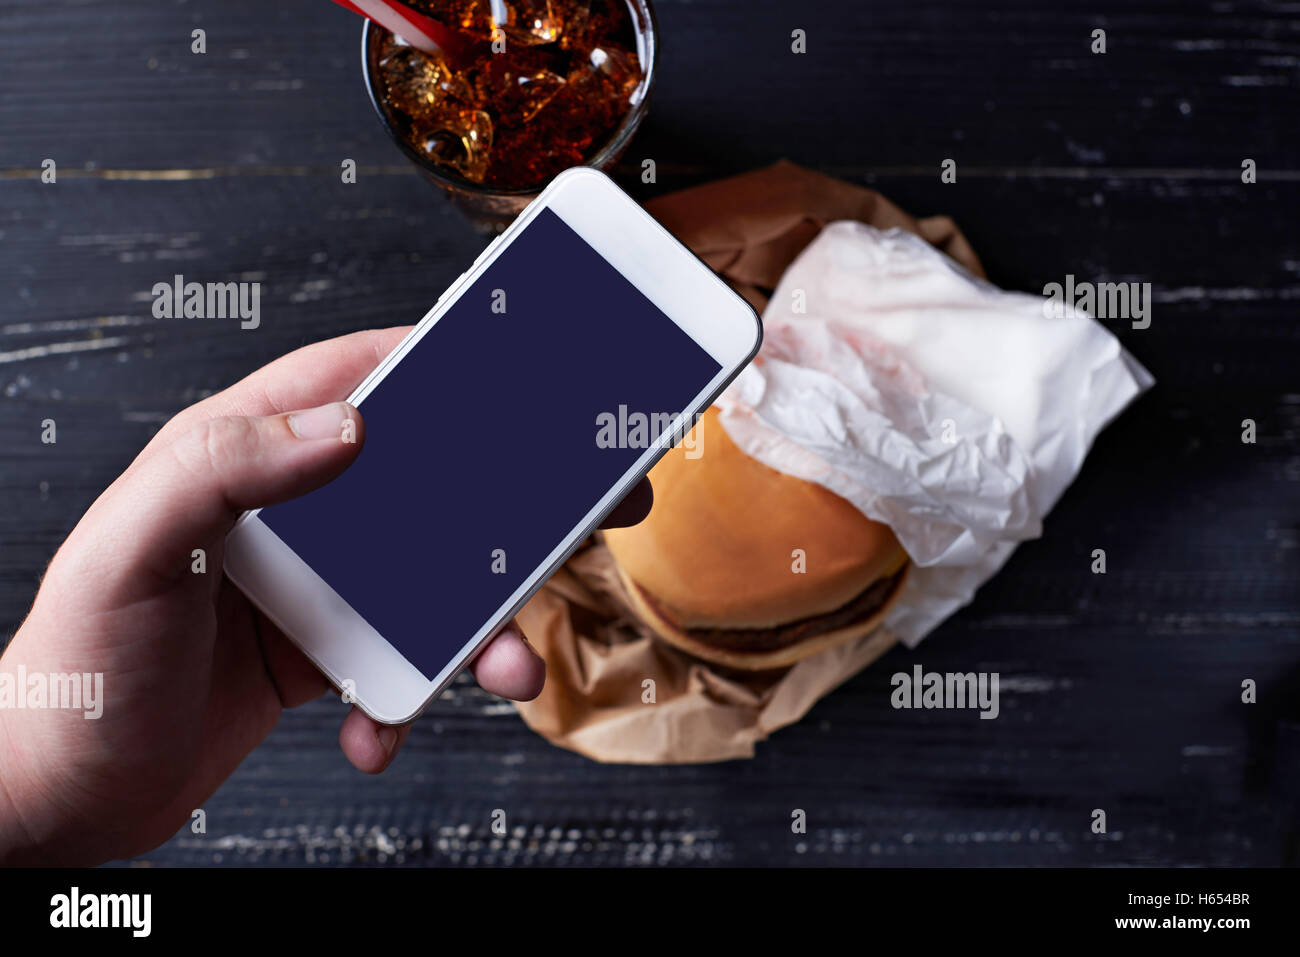 Cheeseburger with moblie phone Stock Photo